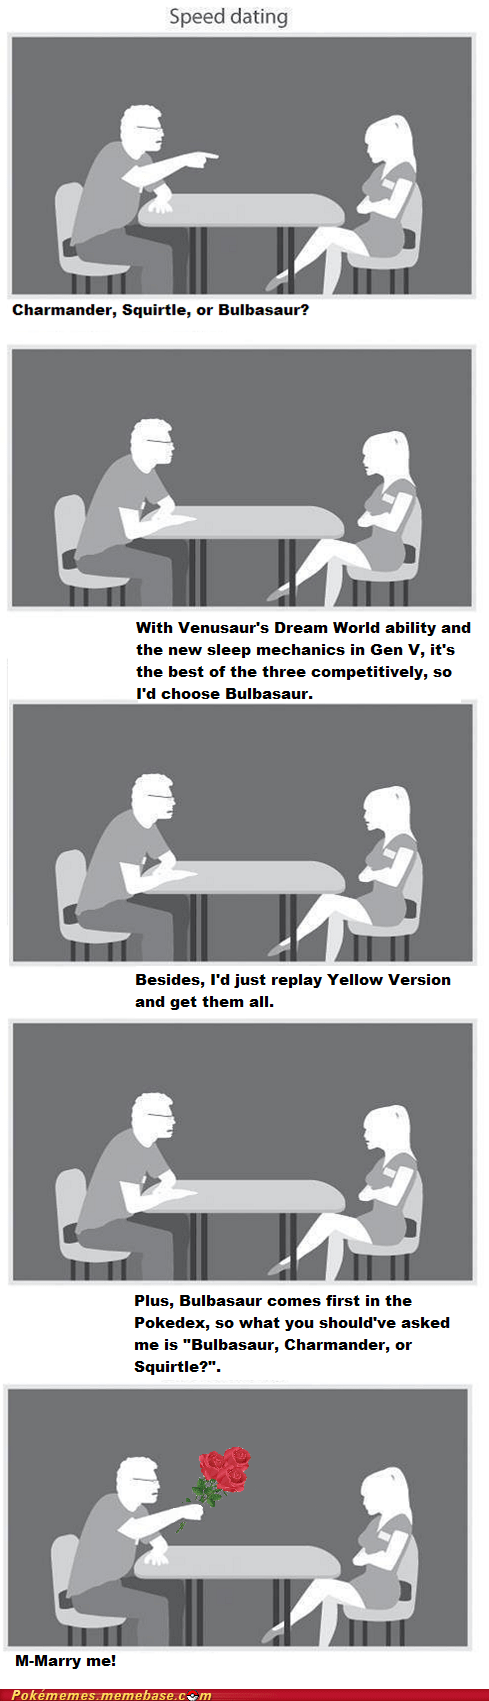 Nerd speed dating comic